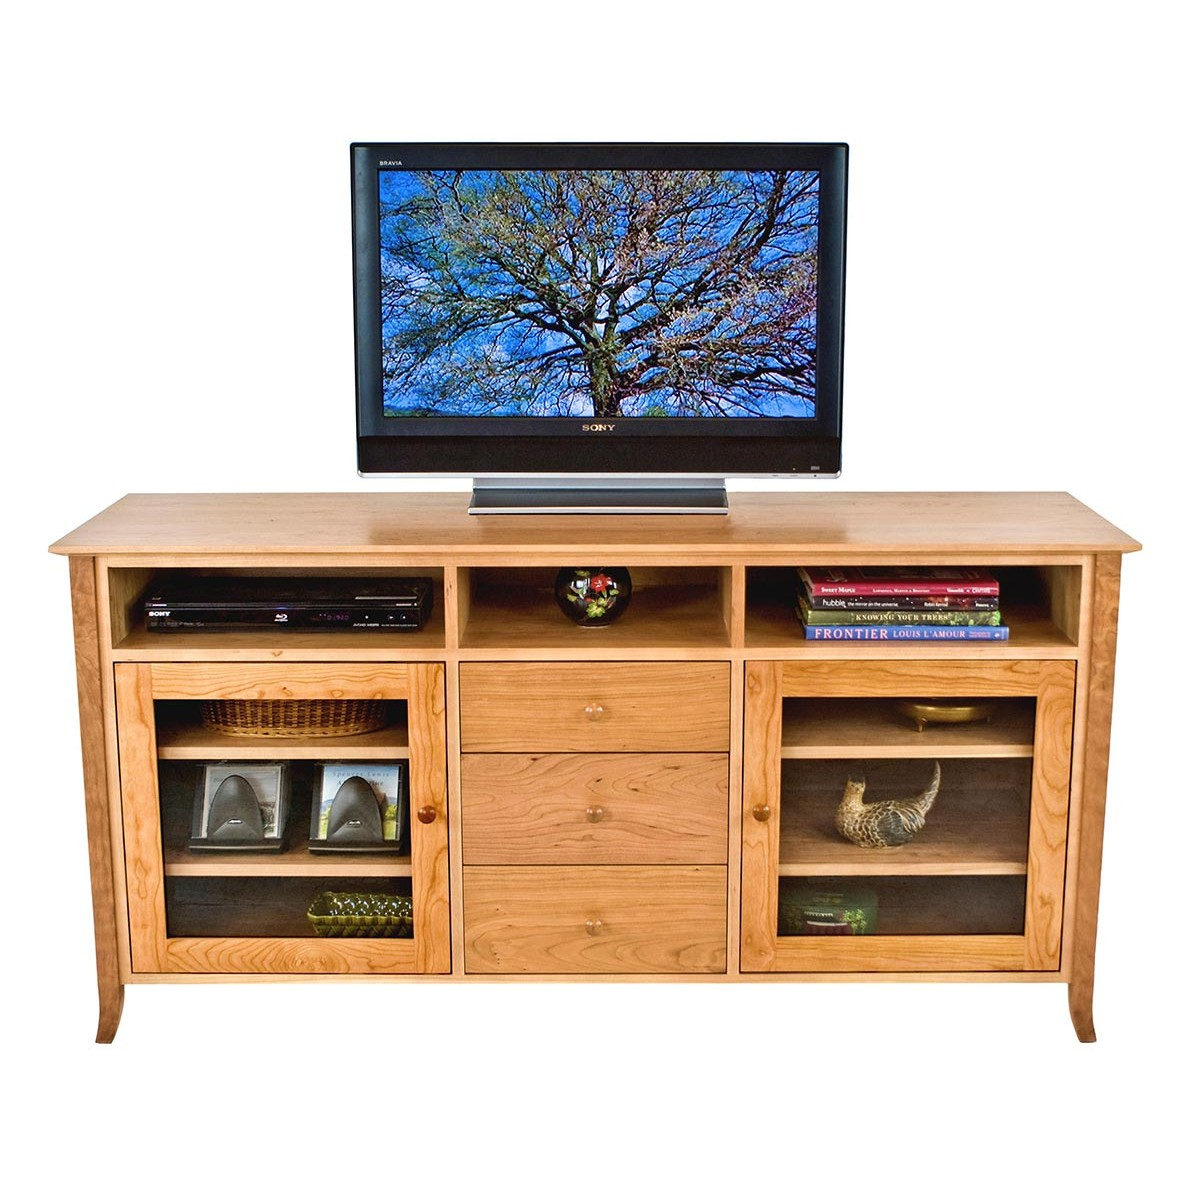 Lyndon create your own et unit 64 wide from 2 Design your own tv room